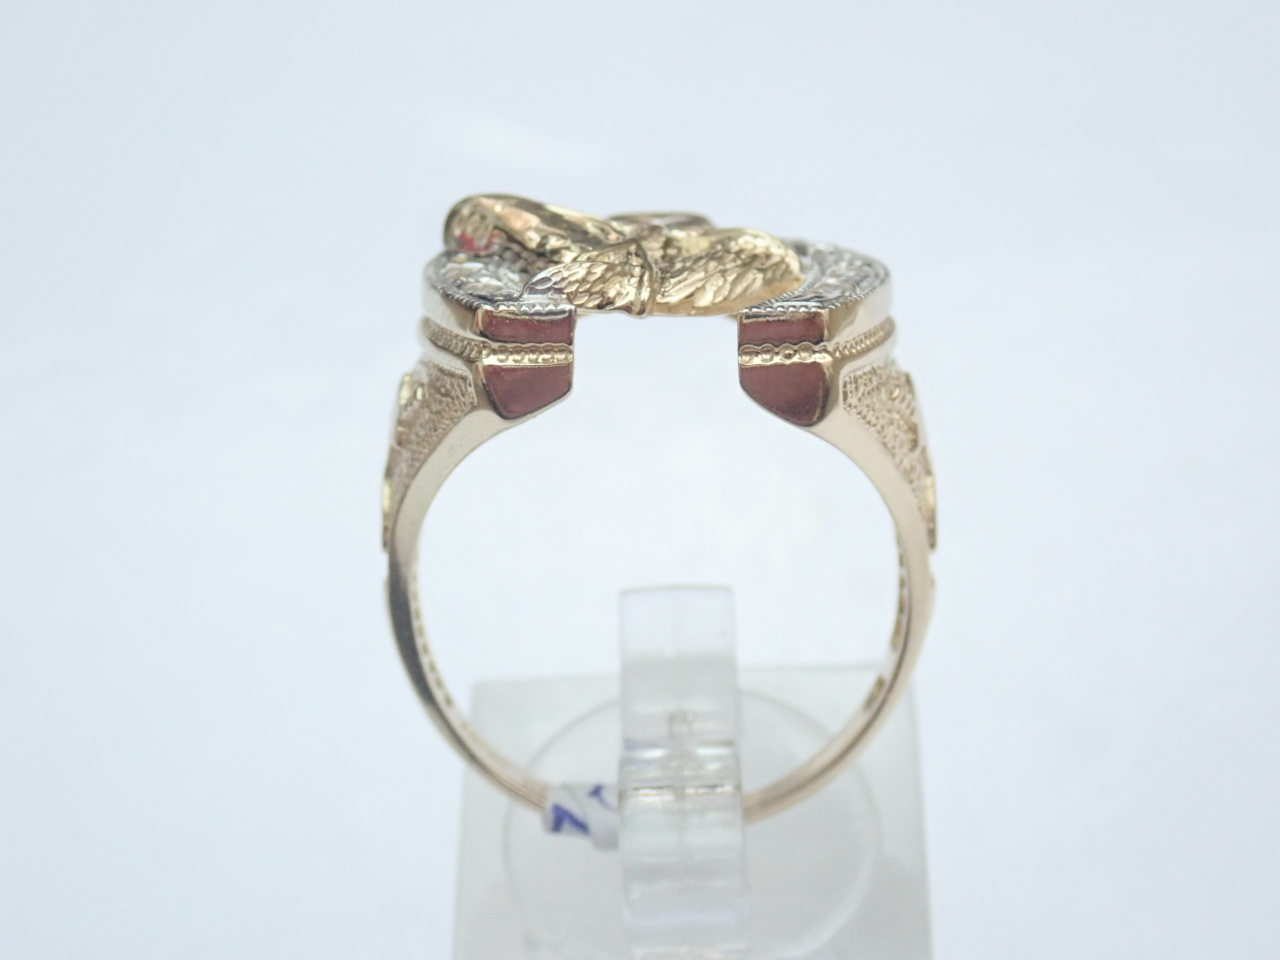 Horseshoe ring with cubic zirconia 9ct 375 Gold Size R ring hand-set with cubic zirconia #180